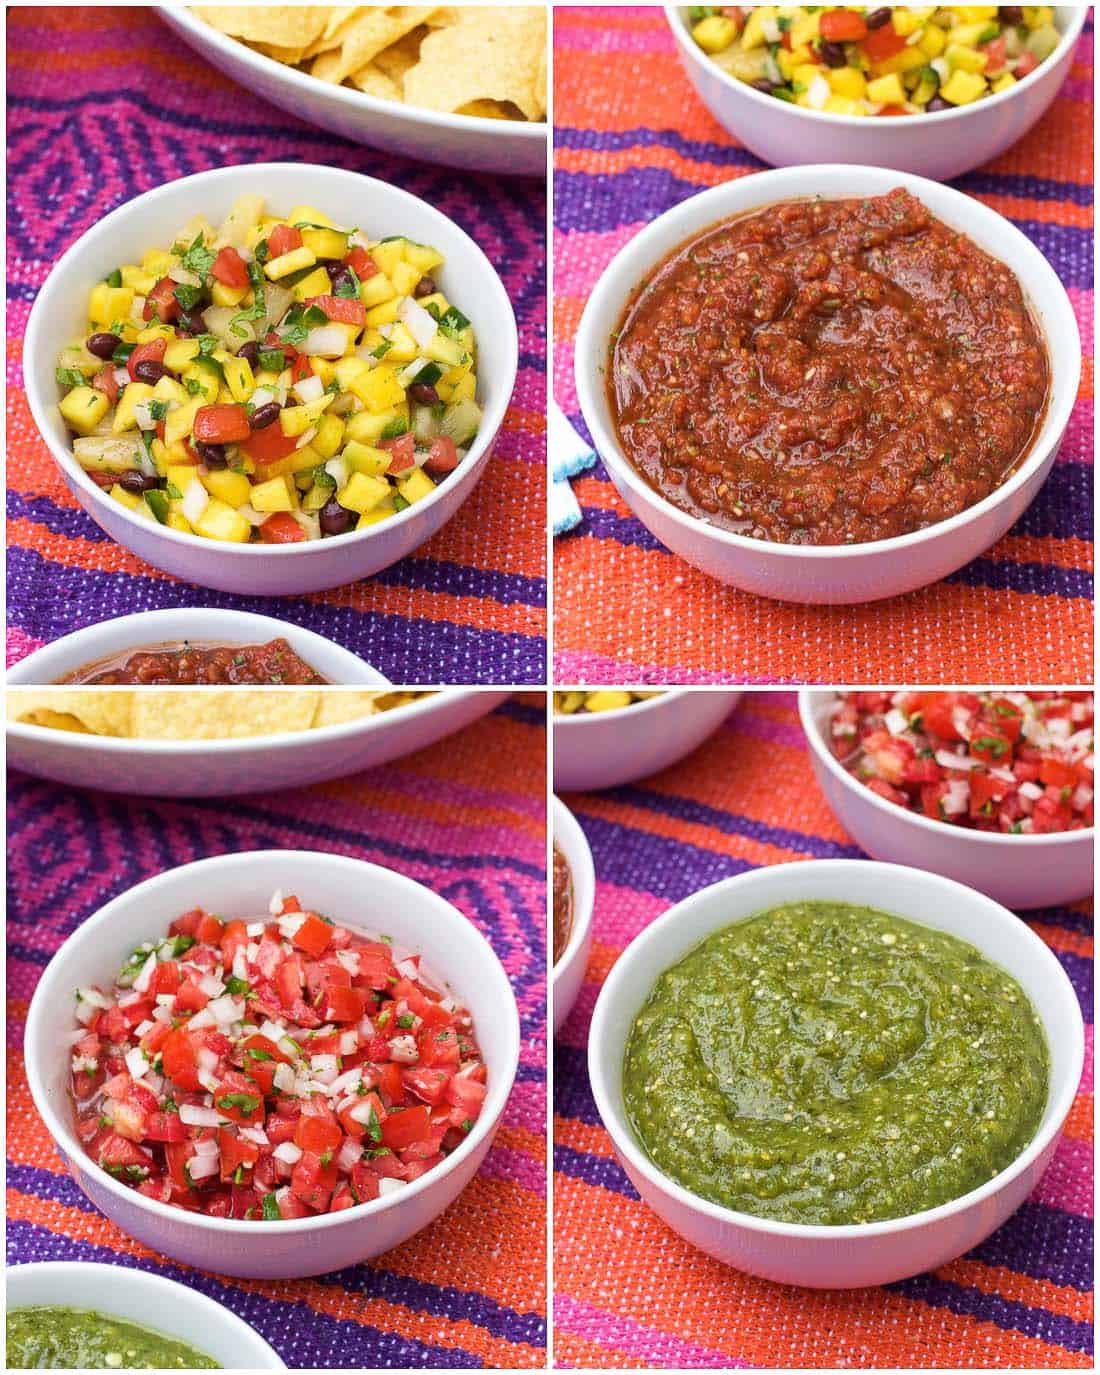 A four-image collage of the different types of salsas in white bowls